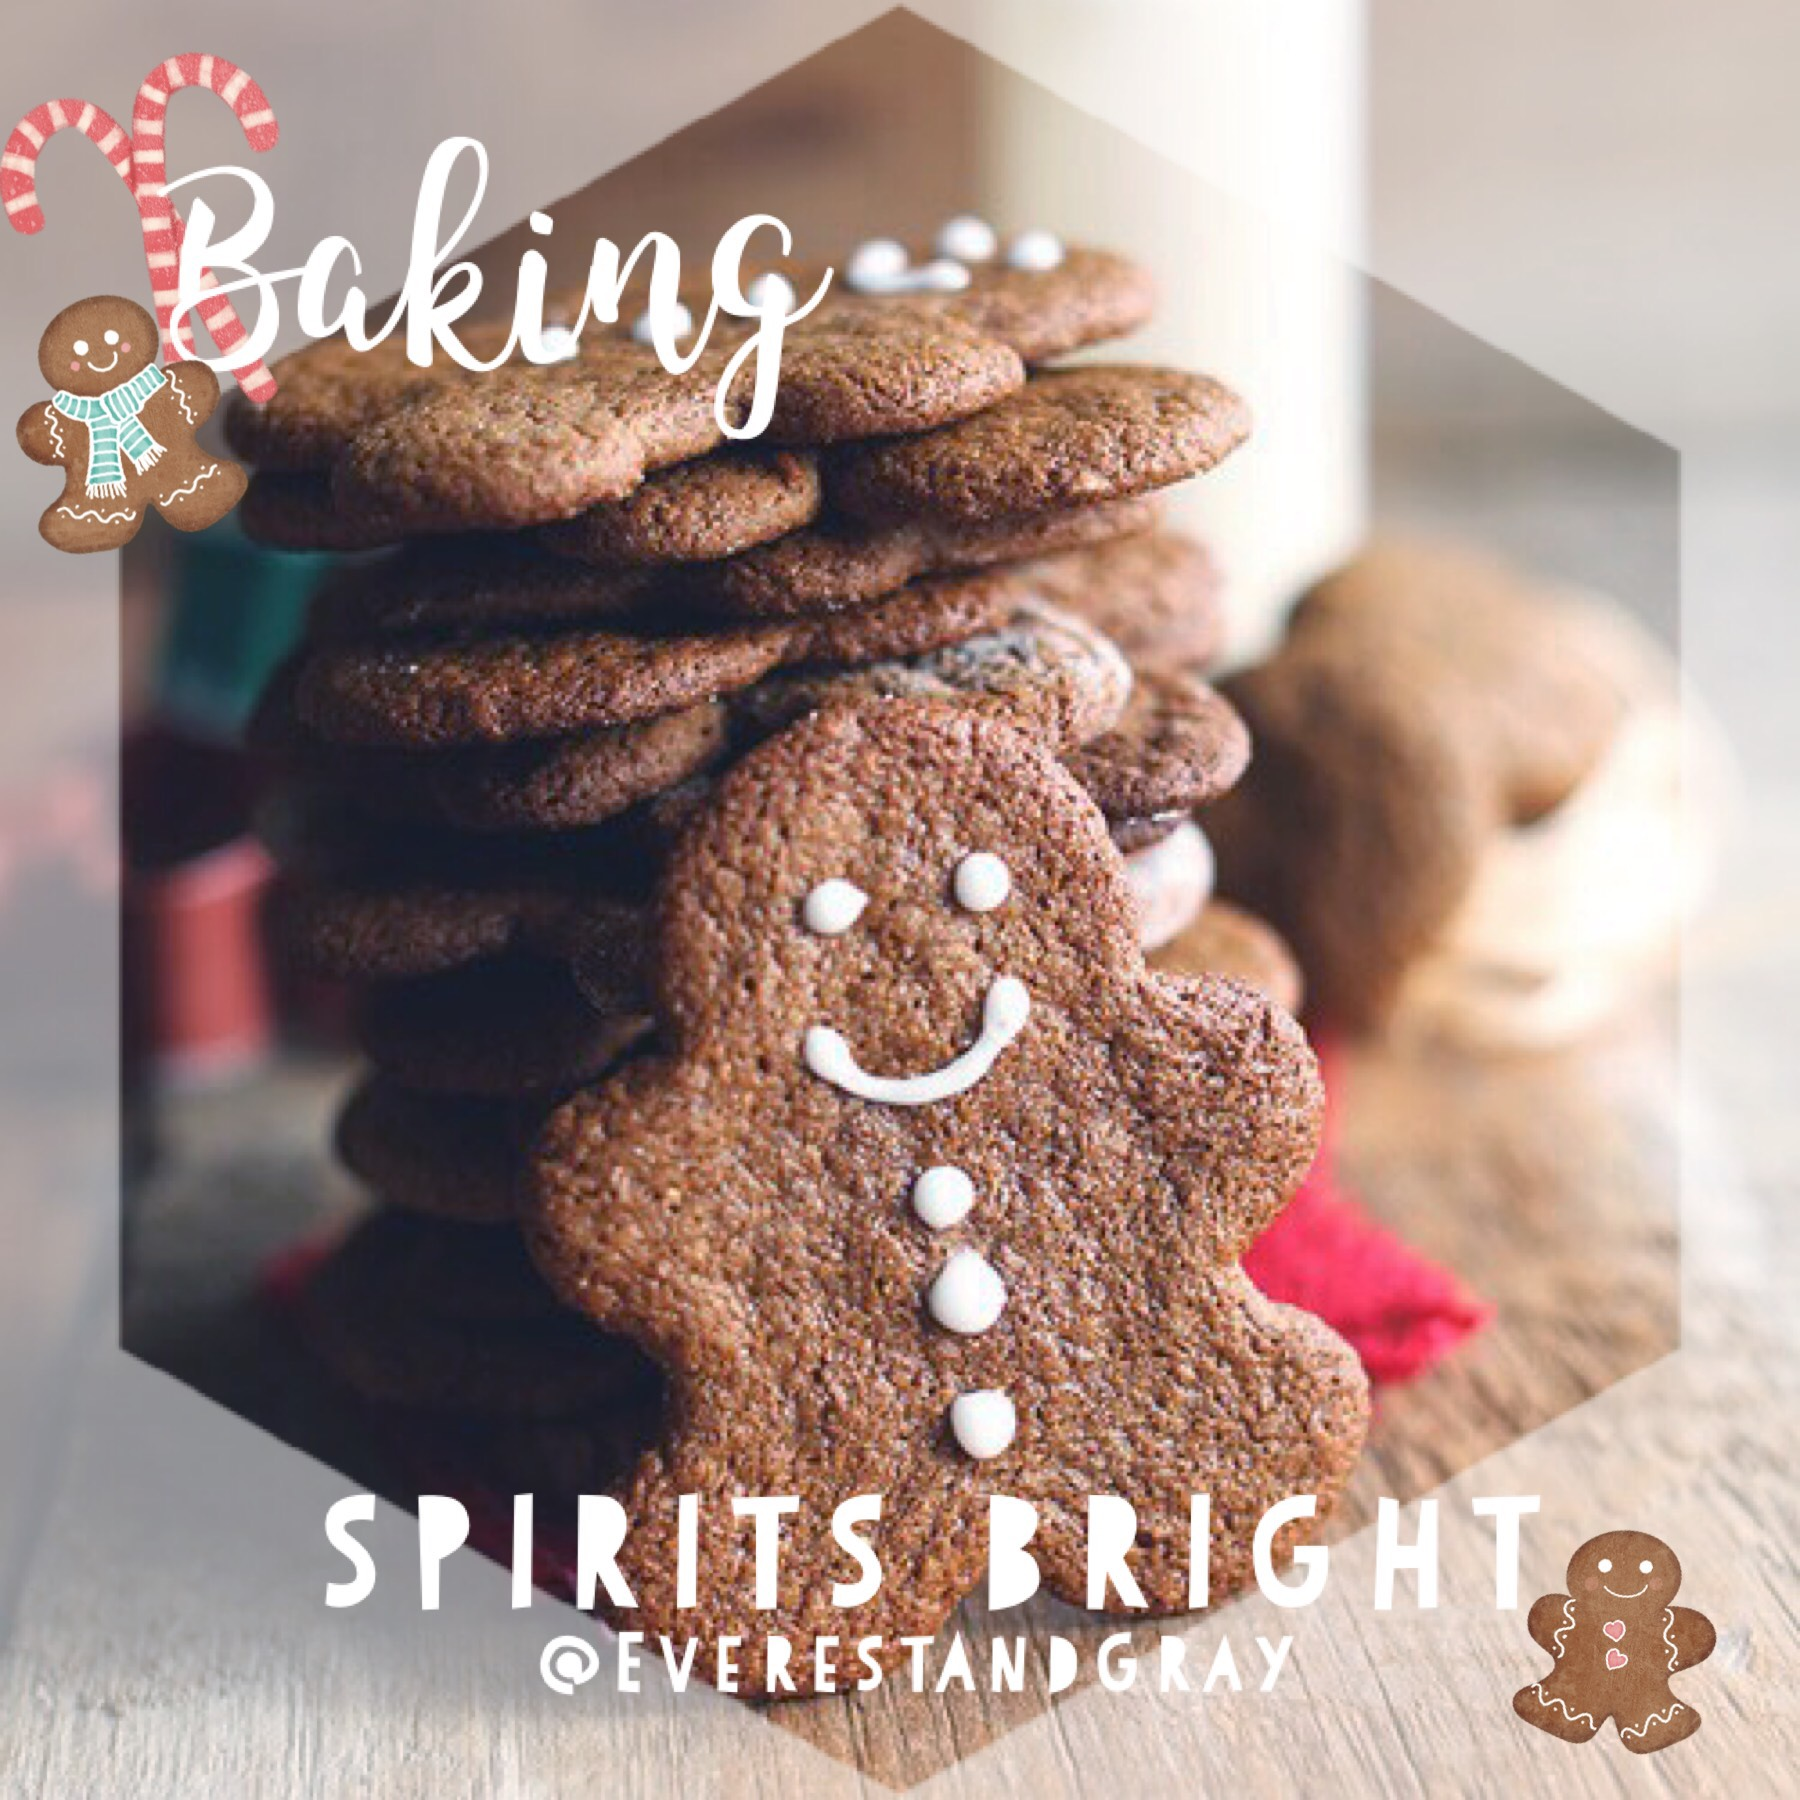 🌲♥️Baking Spirits Bright! What are your favorite Christmas cookies?? I love baking gingerbread + PB Blossoms! 😊 📷: #HollyJollyChristmas stickers   @piccollage @prisillay